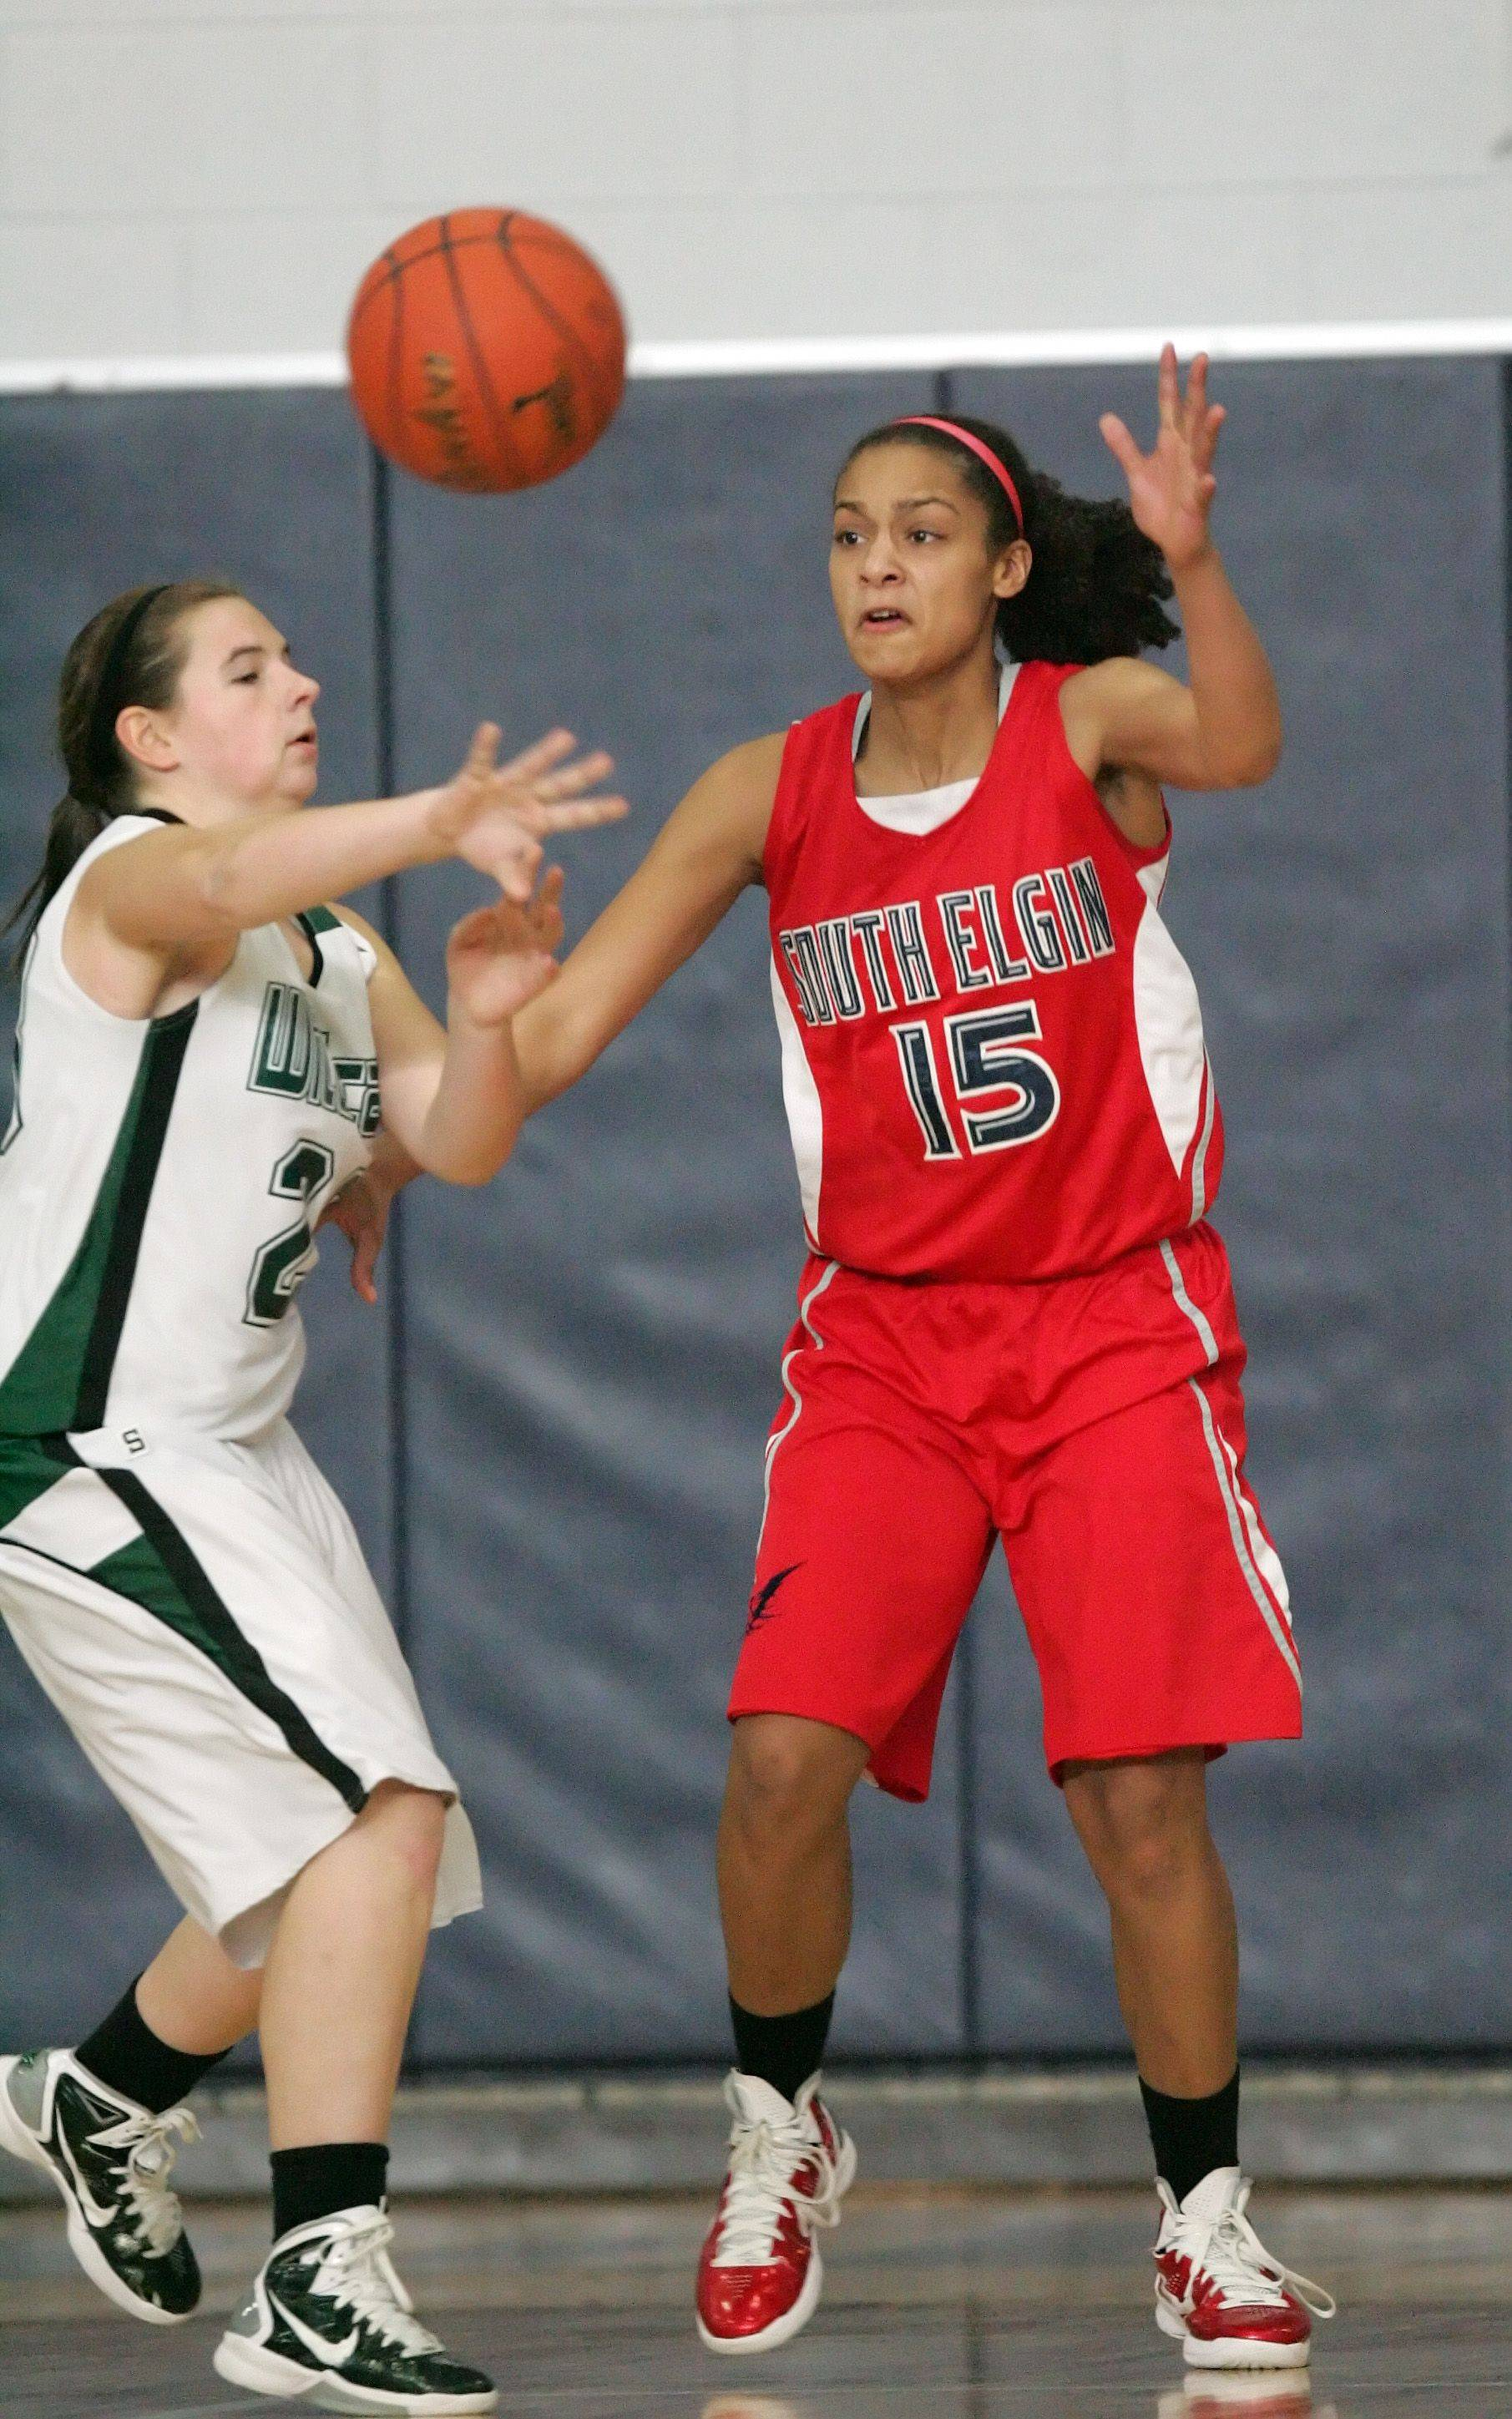 Images from the South Elgin vs. Plainfield Central girls basketball game Tuesday, December 28, 2010.